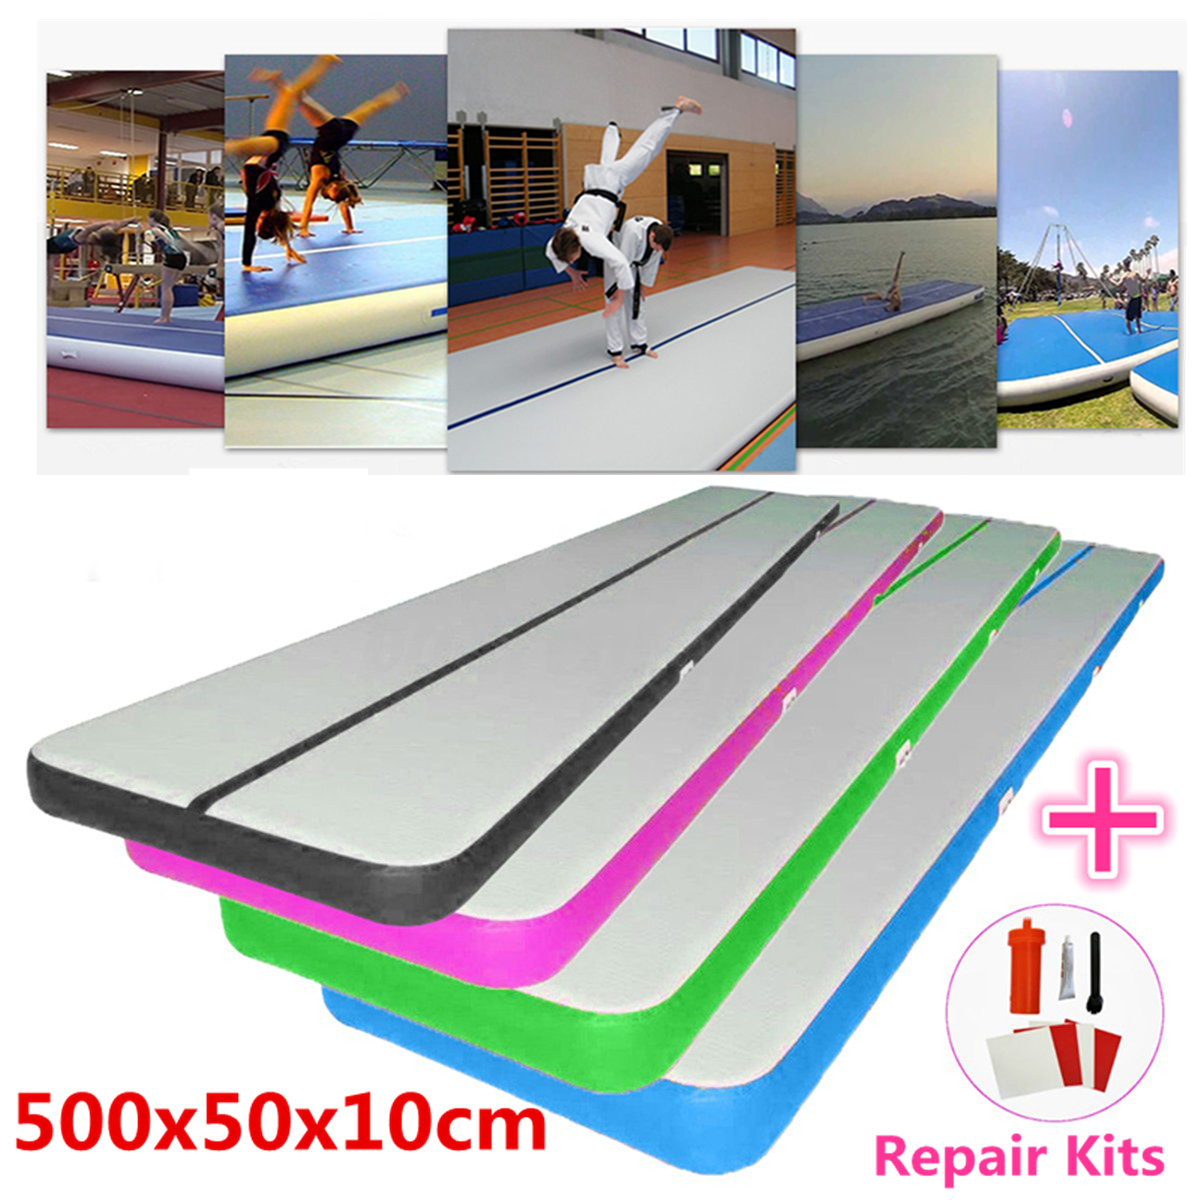 500x50x10cm Airtrack Air Track Floor Home Inflatable Gymnastics Tumbling Mat GYM Inflatable Balance Equipment Exercise epe foam core folding gym mats gymnastics tumbling exercise mat 2 4mx1 2mx3cm